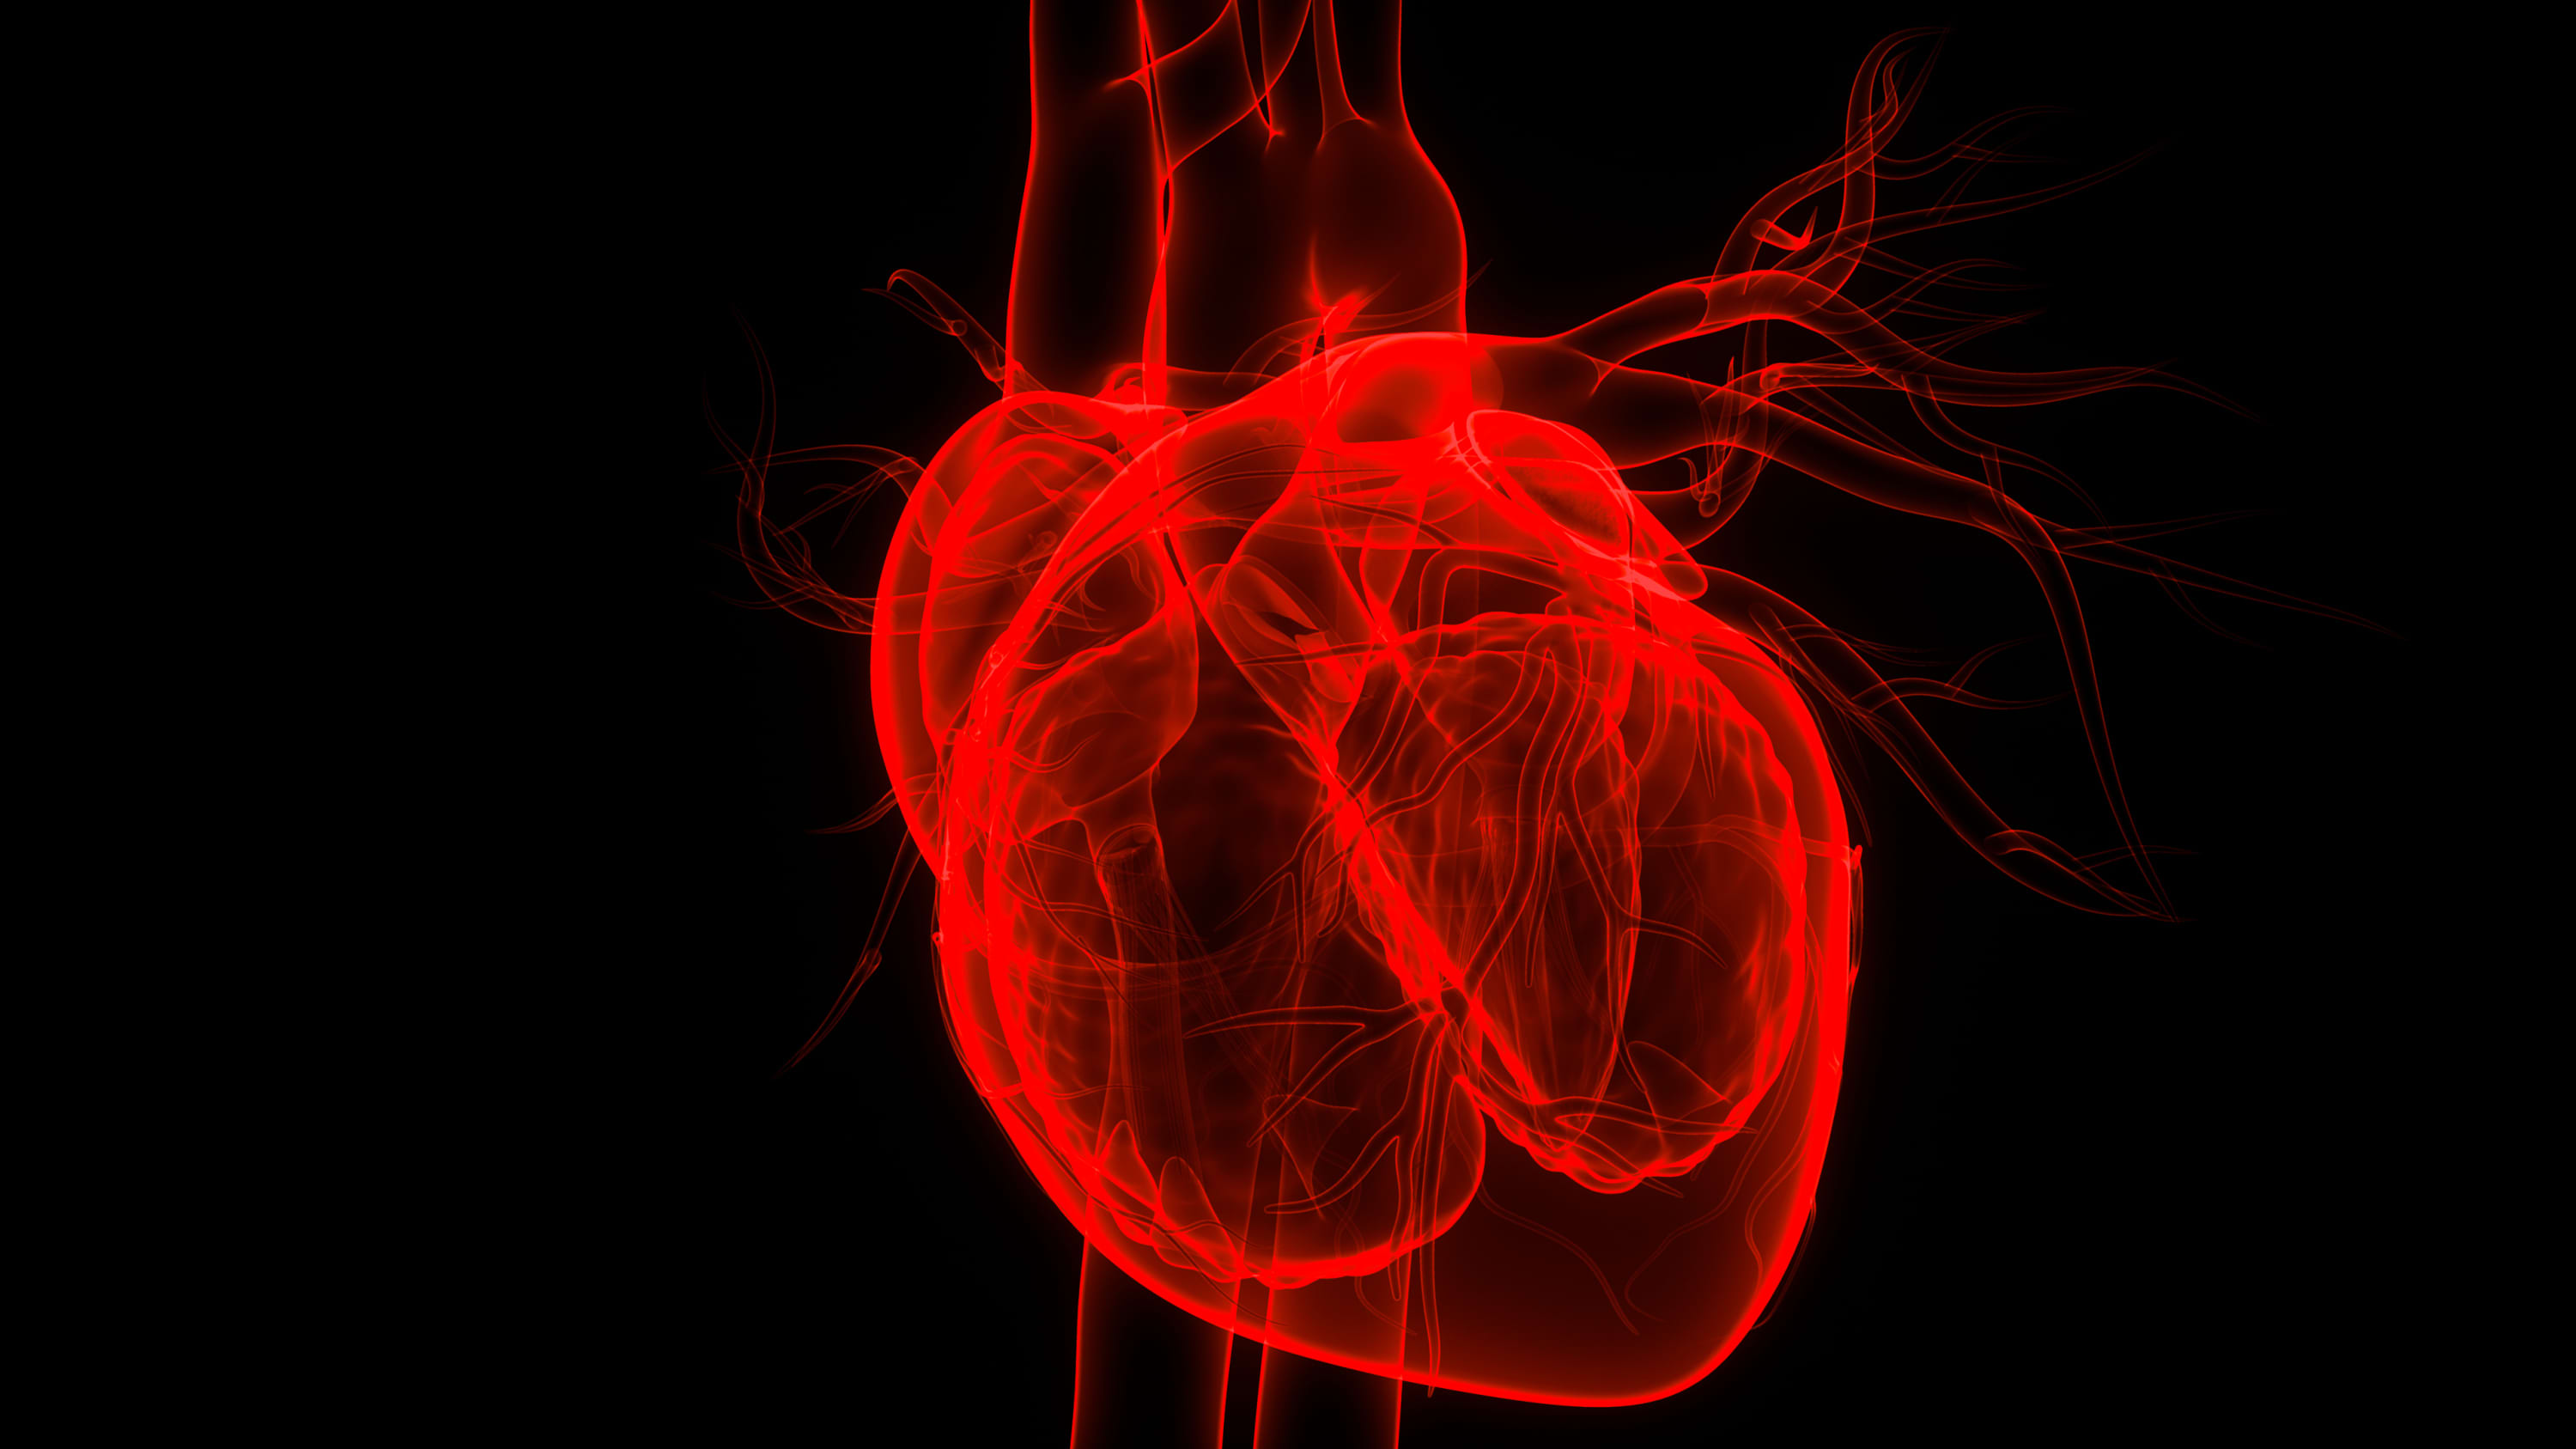 3d image of the heart